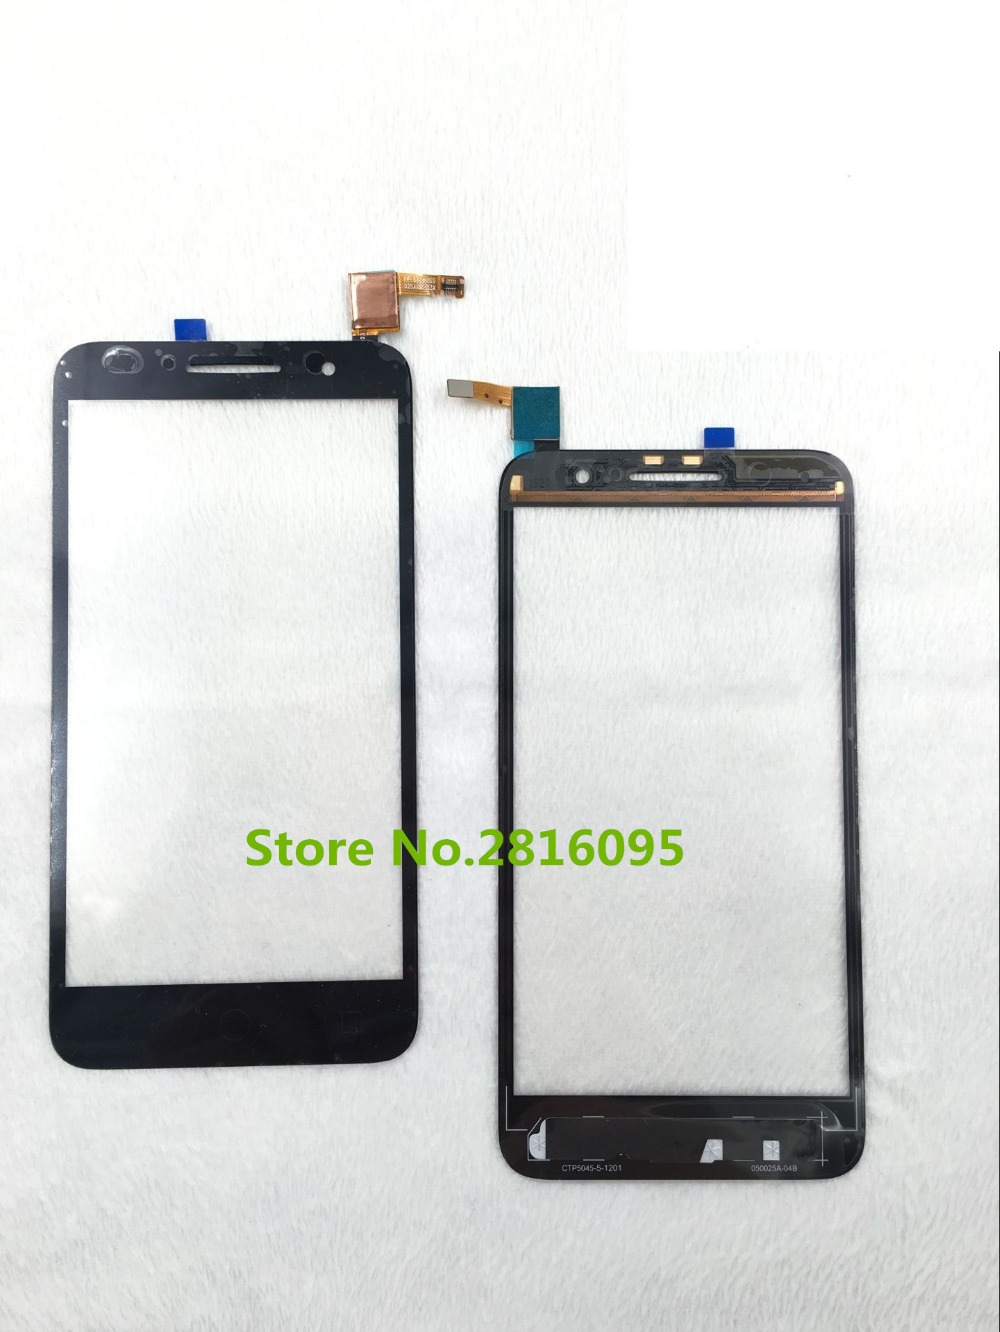 ∞ Big promotion for vodafone 895 and get free shipping - List LED u62